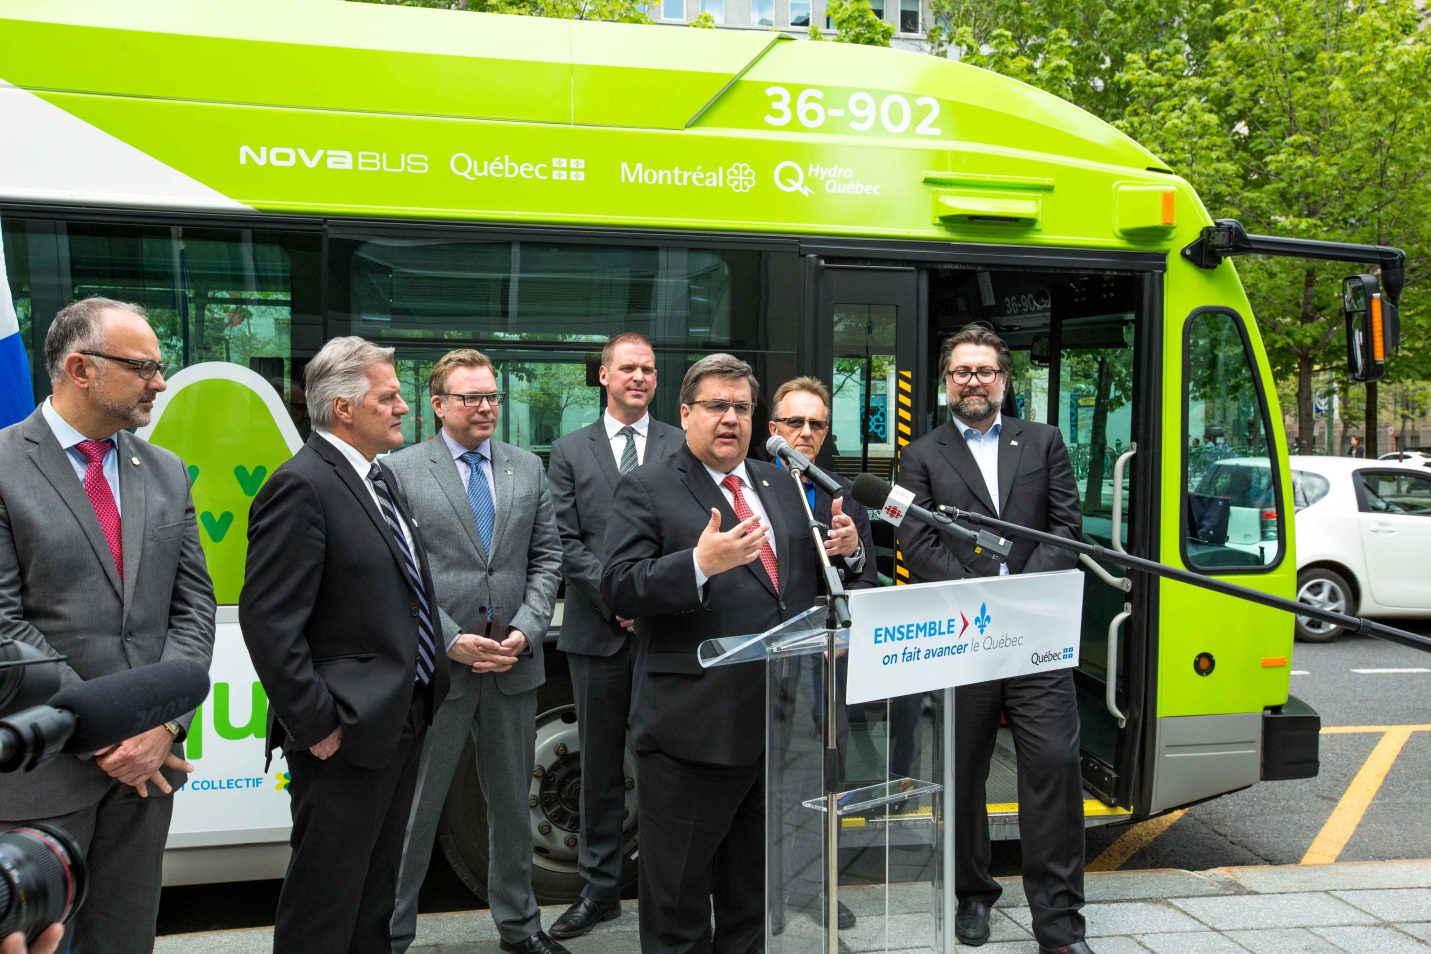 Nova Bus equips the city of Montreal with its first fully electric buses